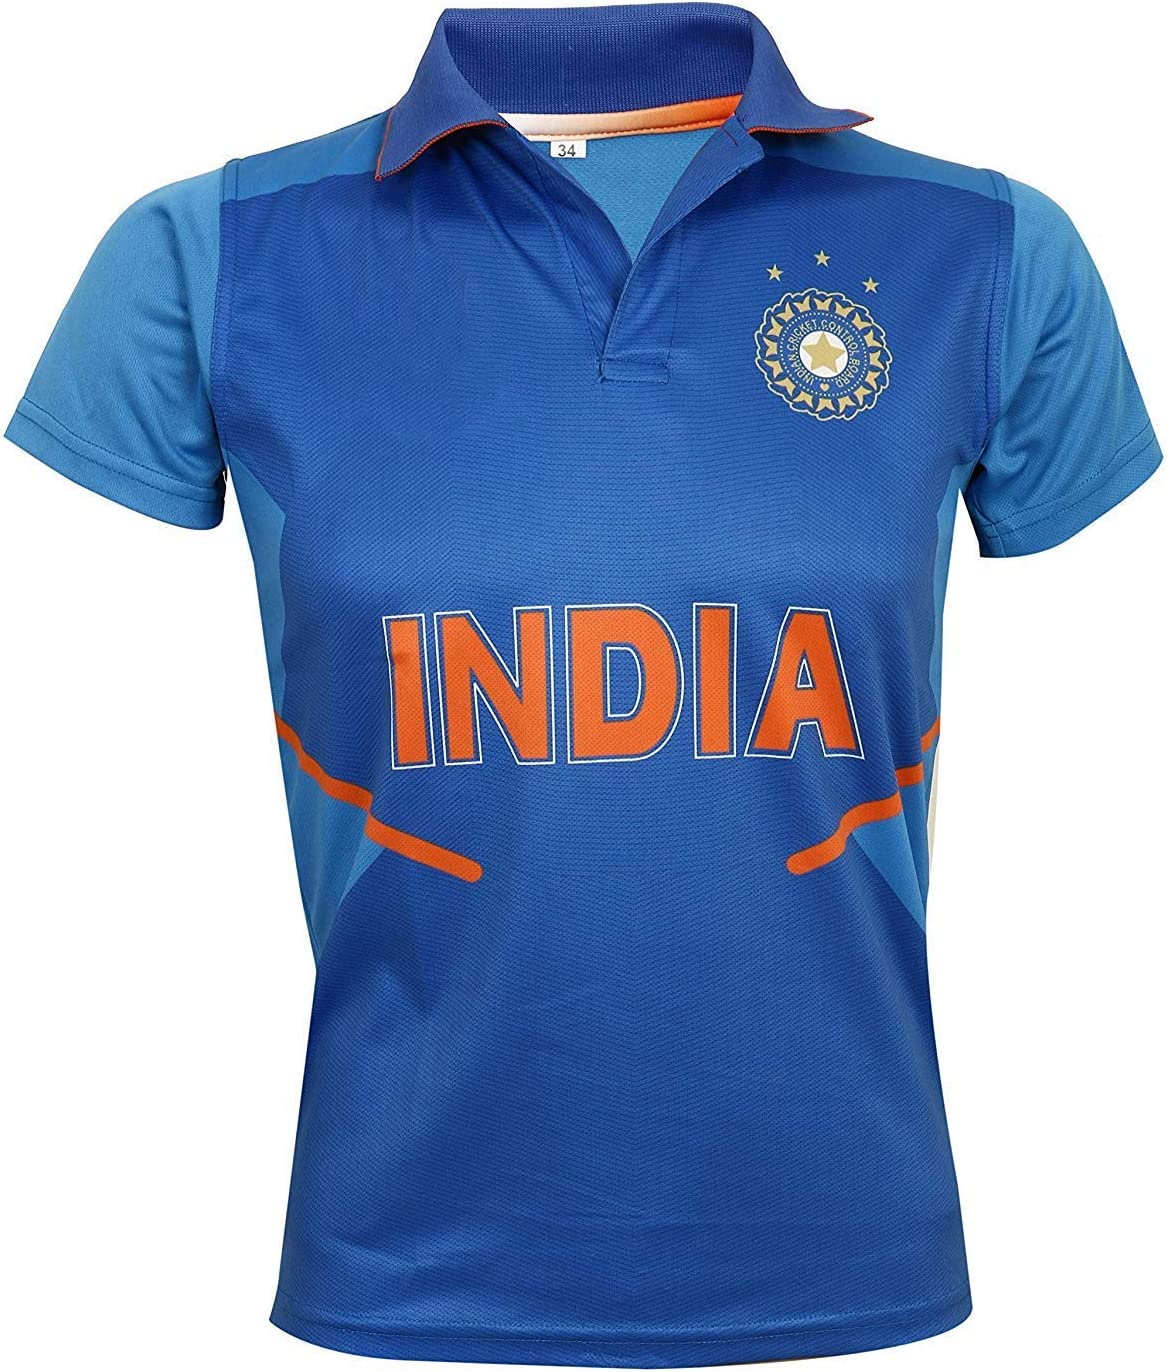 Personalised Cricket T-Shirt Mens Ladies Gift Idea Add Name Of Your Choice